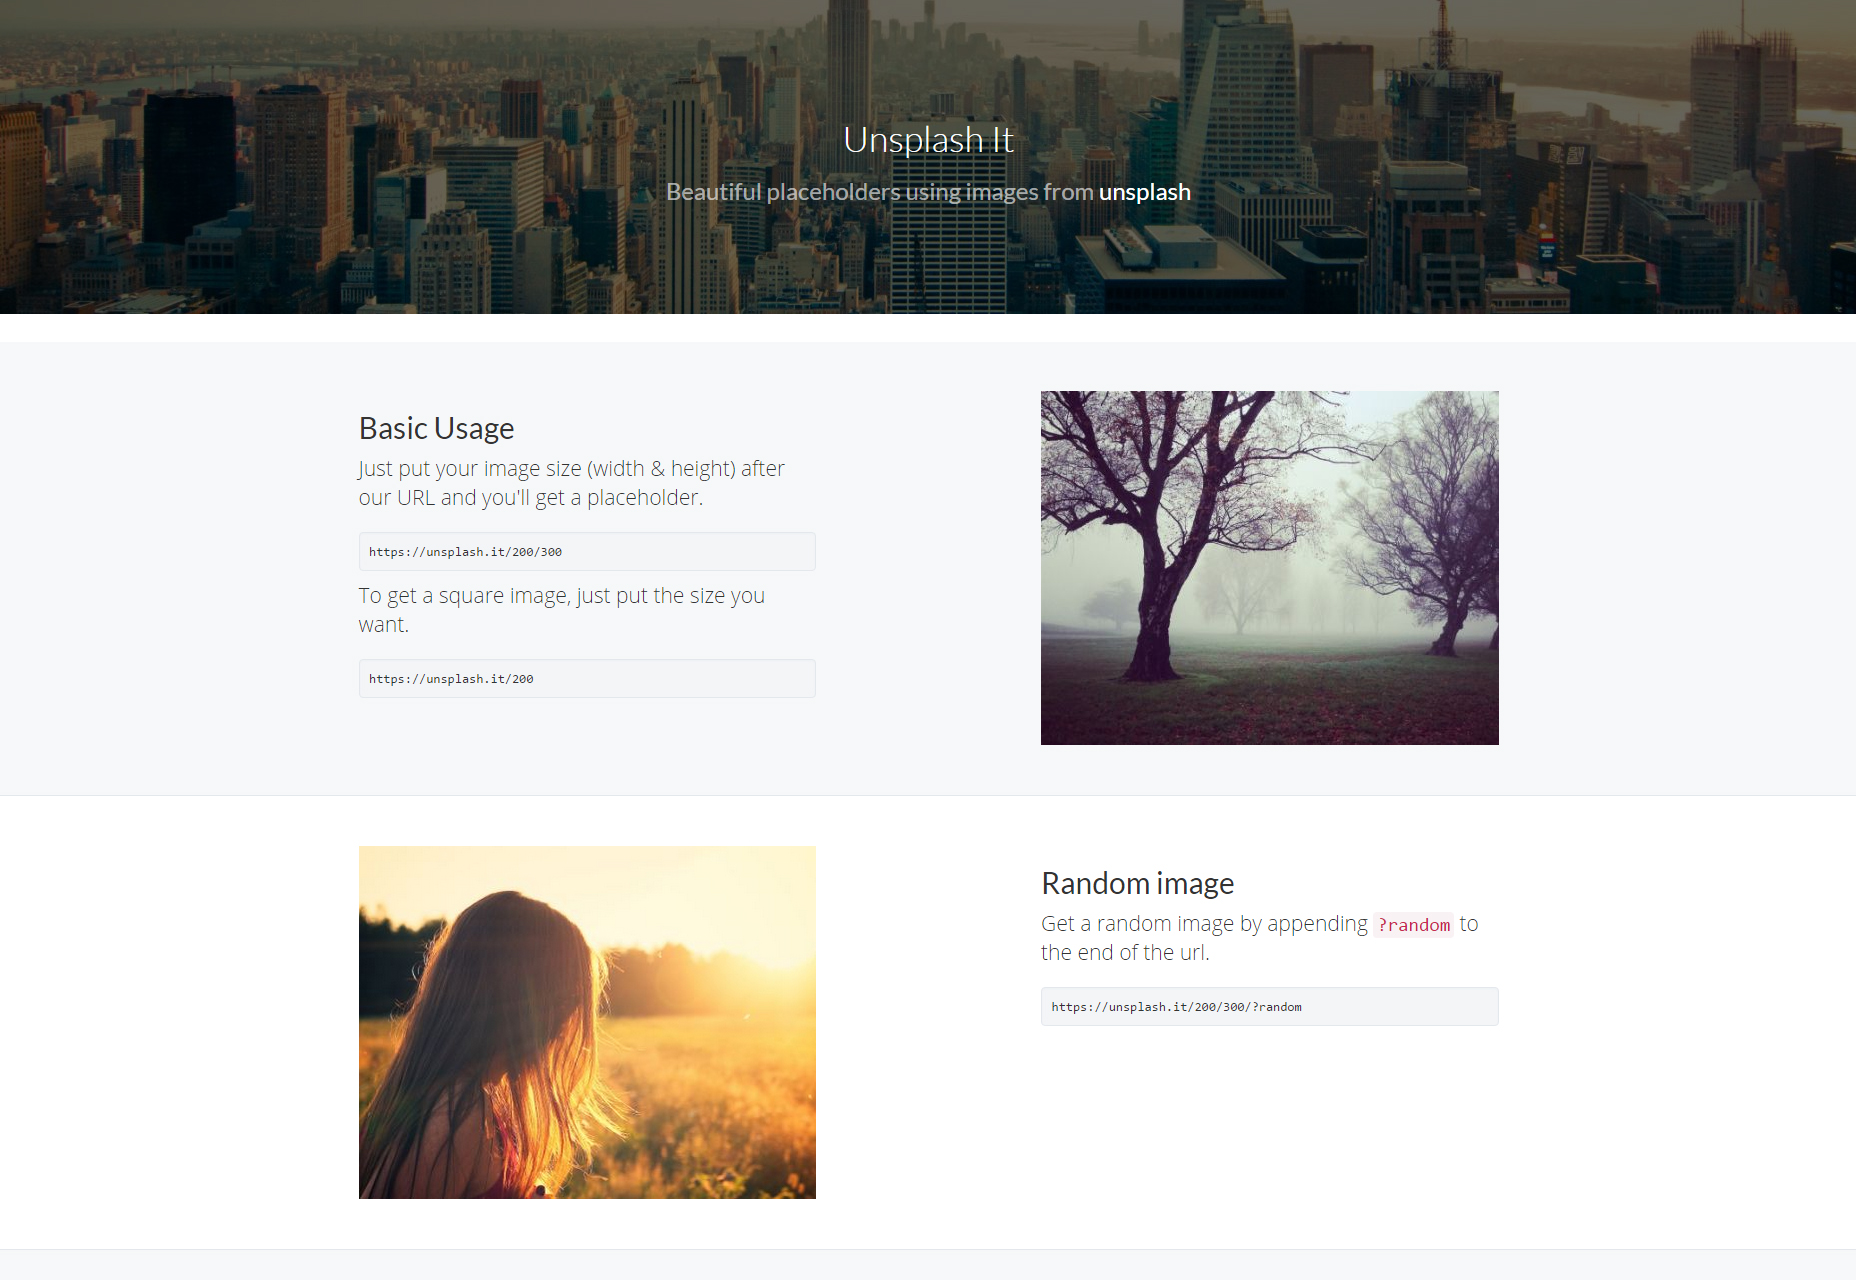 unsplash-it-image-placeholders-one-line-url-